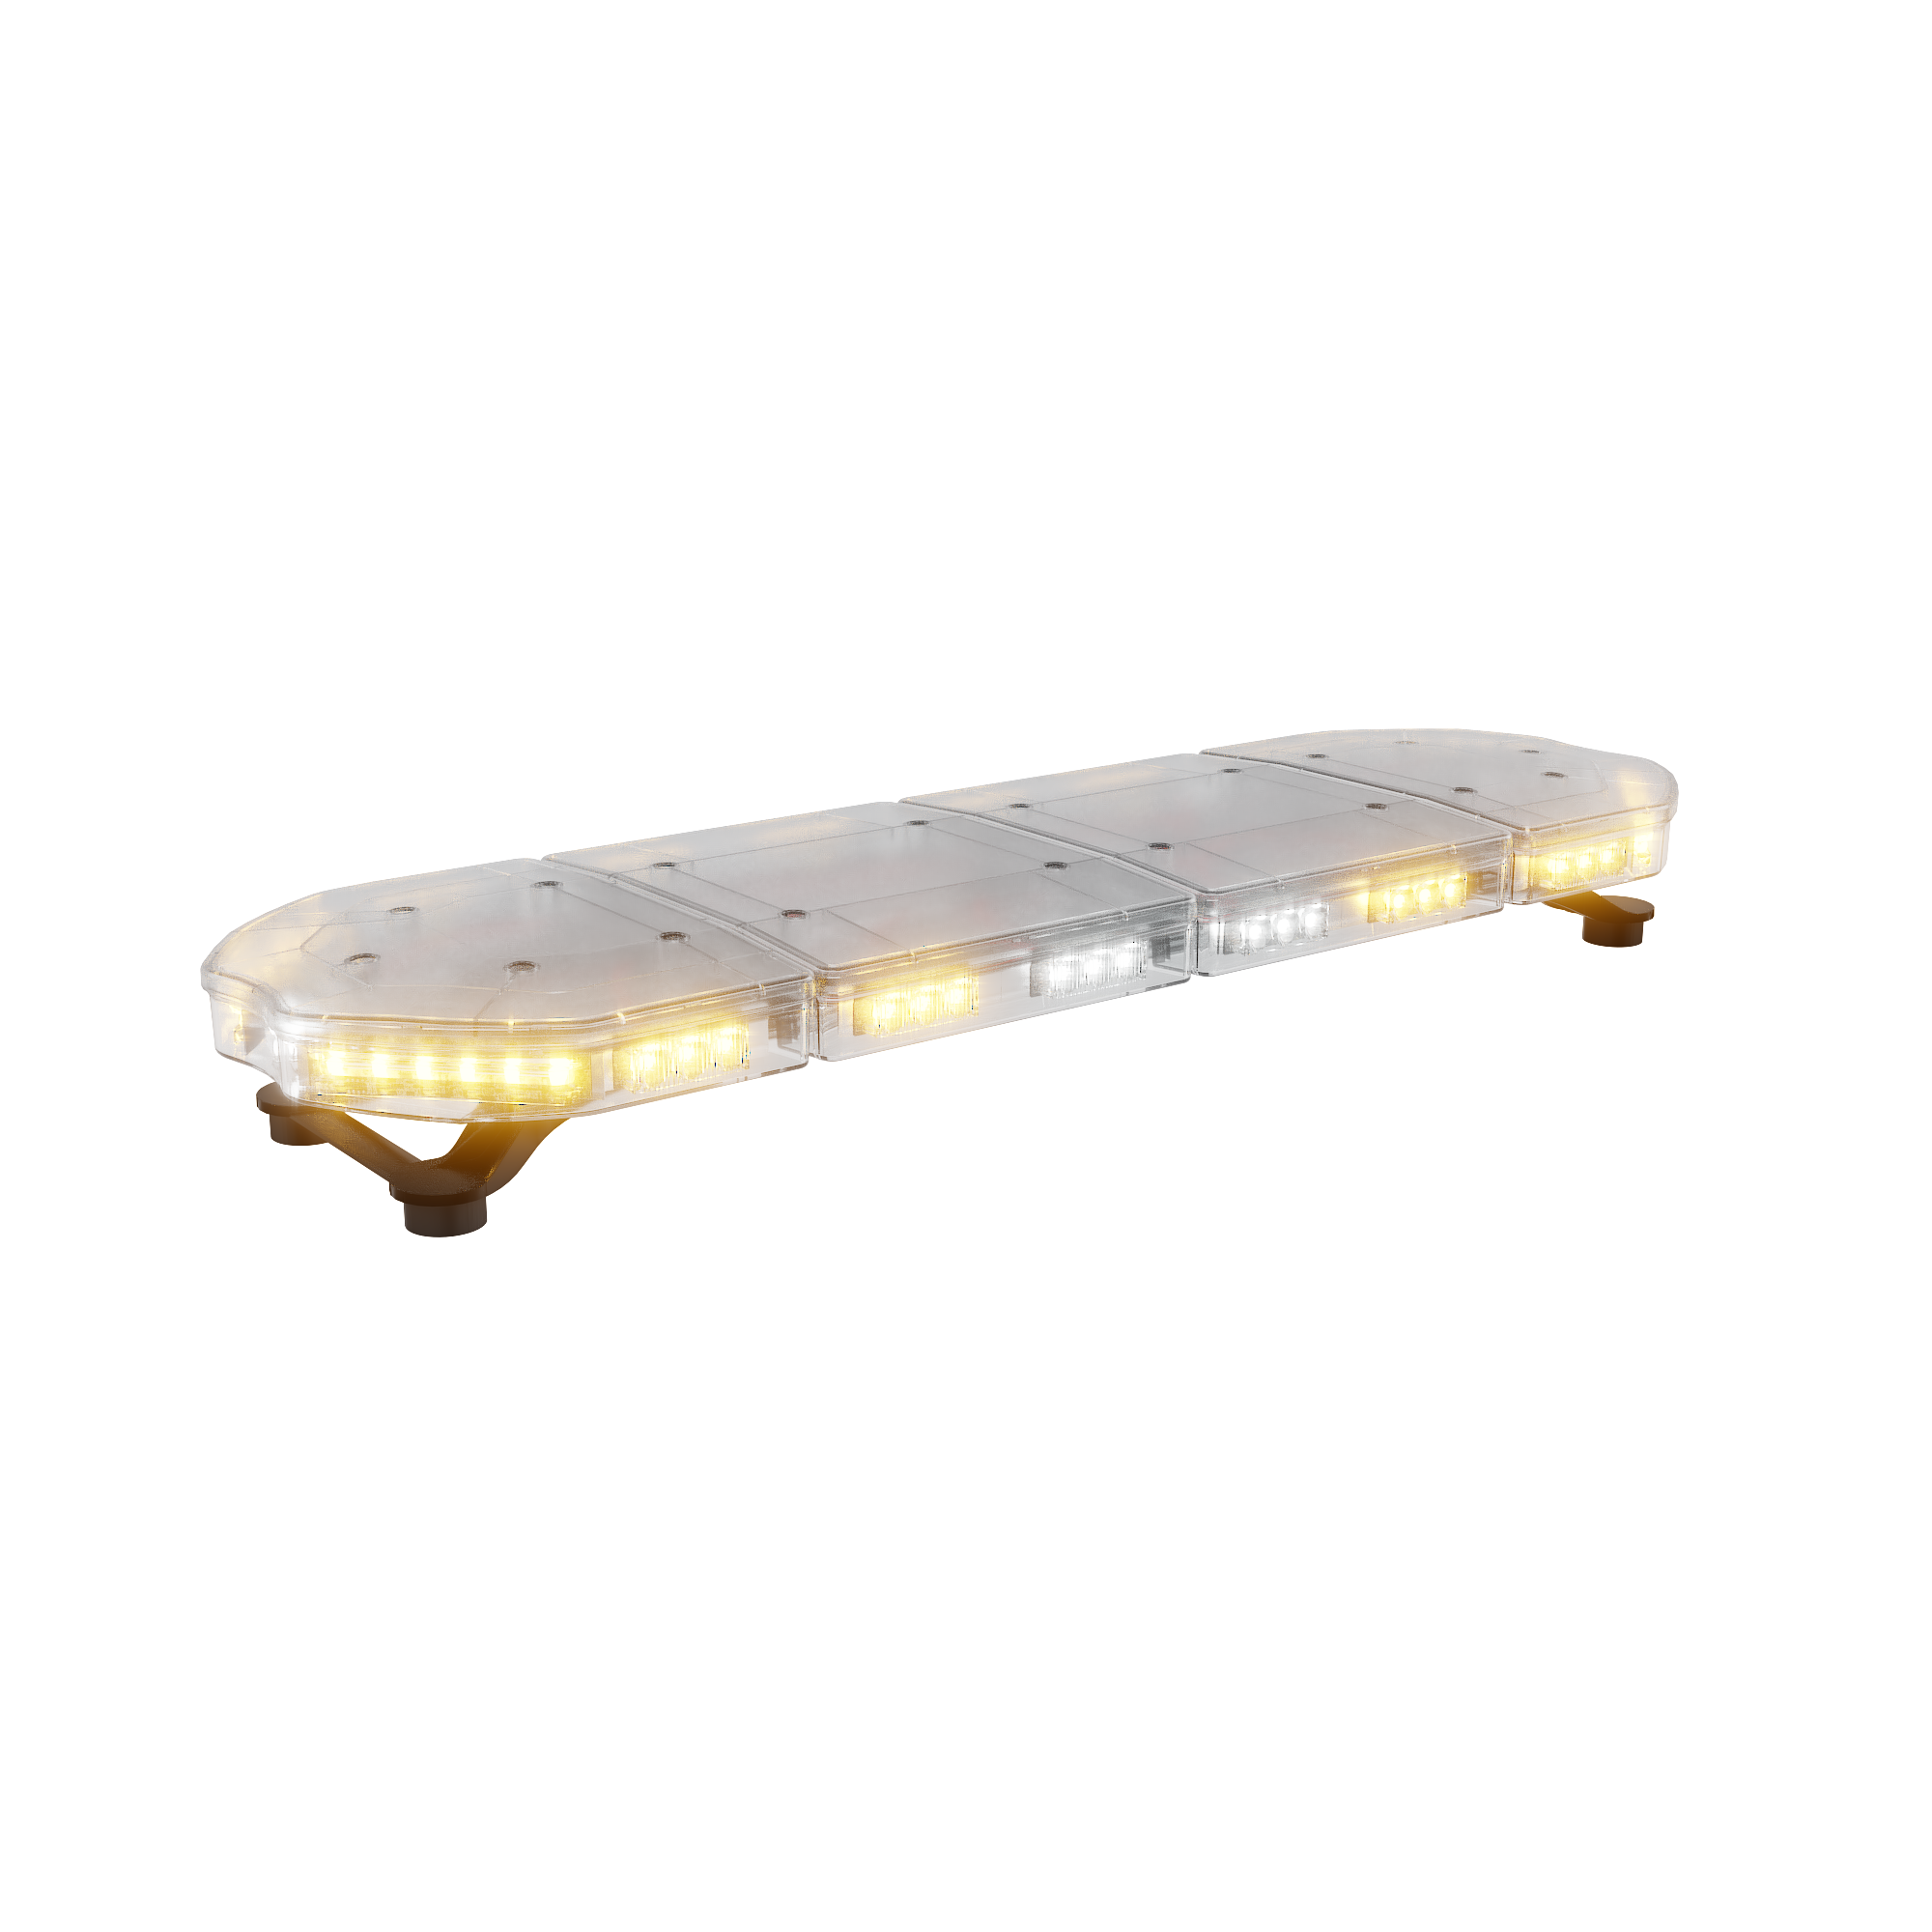 ABRAMS Amber LED RUGEYE 37-INCH ULTRA BRIGHT LIGHT BAR